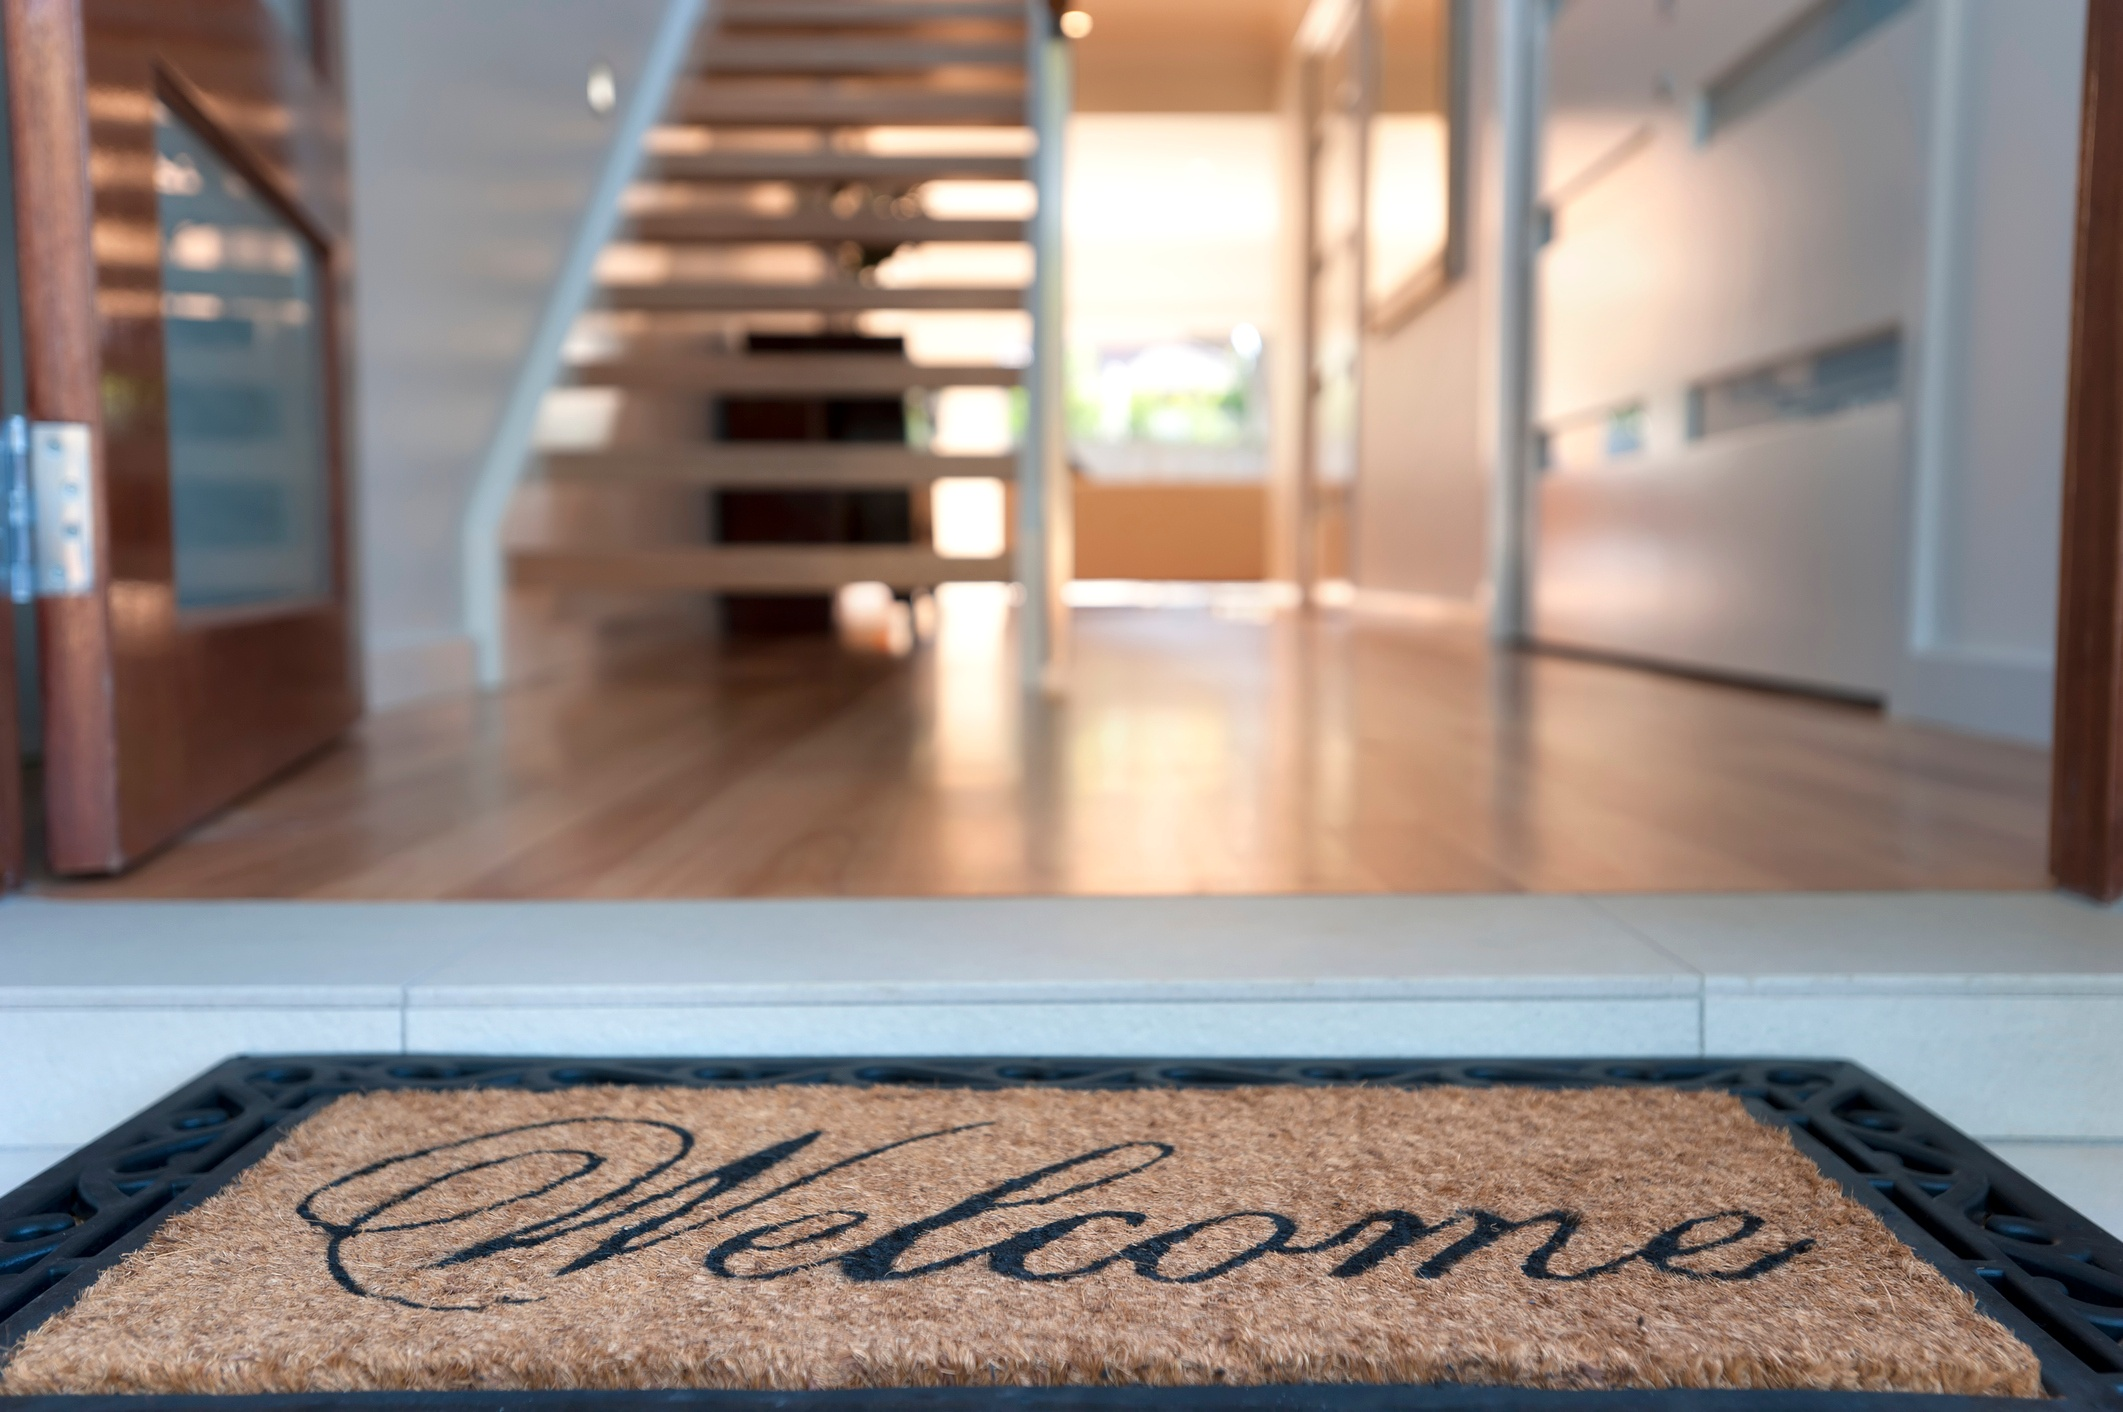 For Sale By Owner Vs. Realtor: Which Is Best?